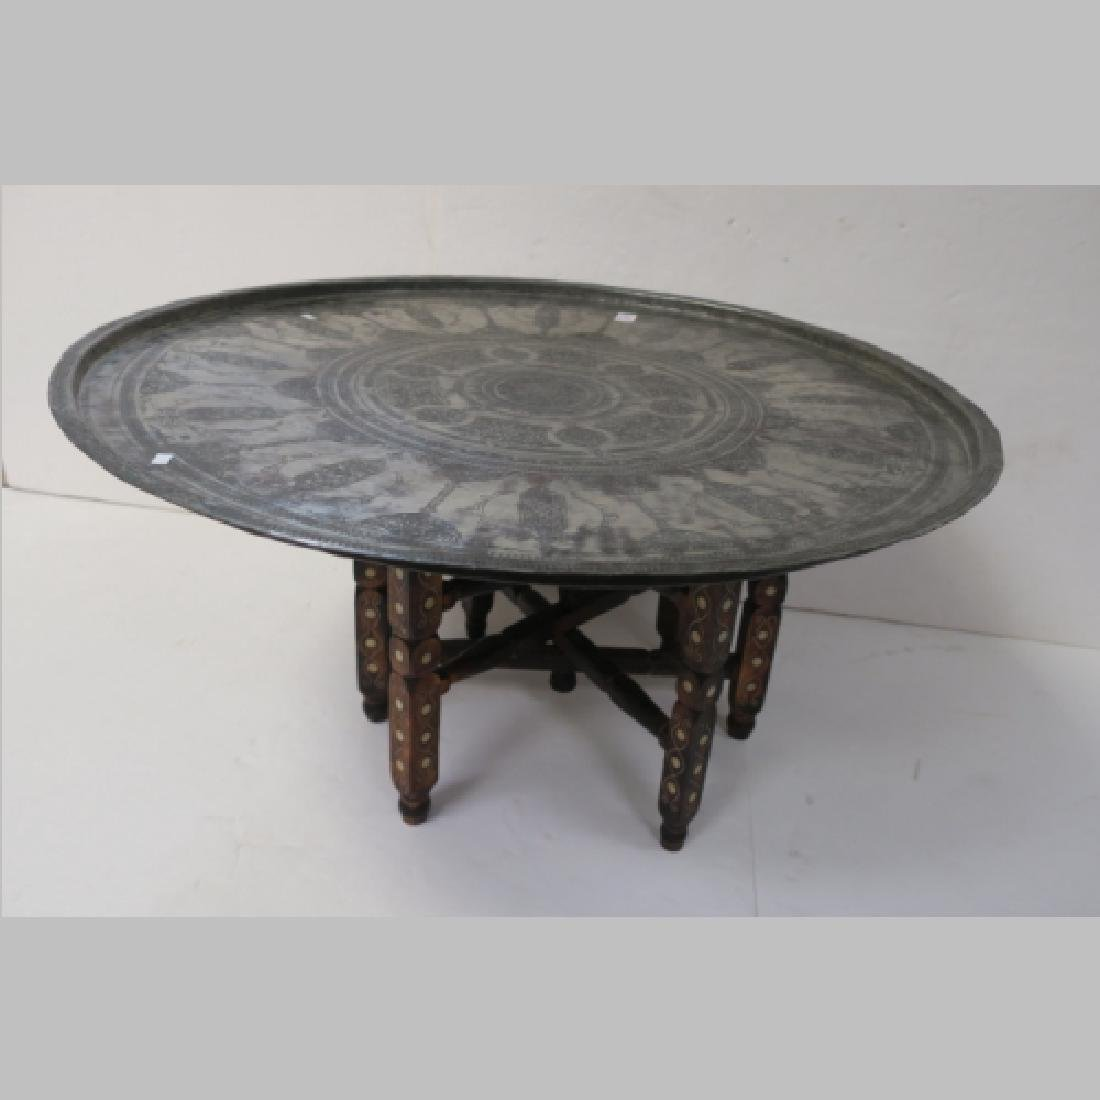 Round Metal East Asian Table with Folding Legs: